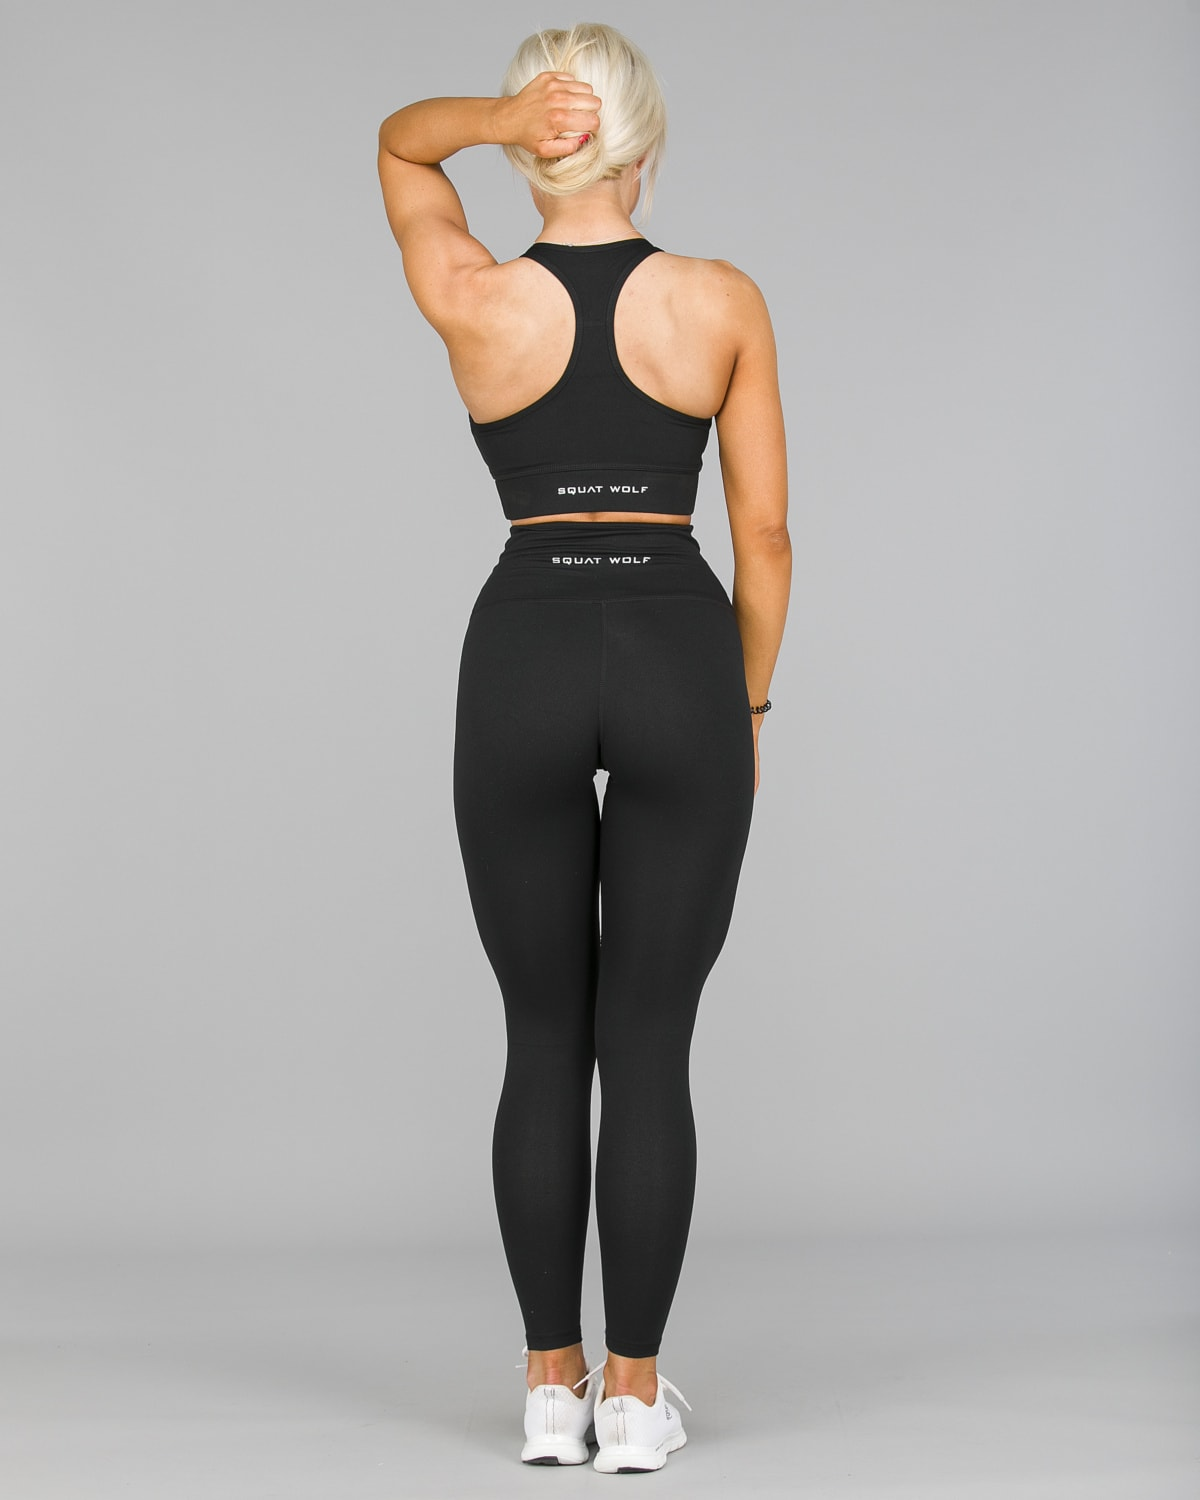 Squat Wolf – Hera Leggings – Black4